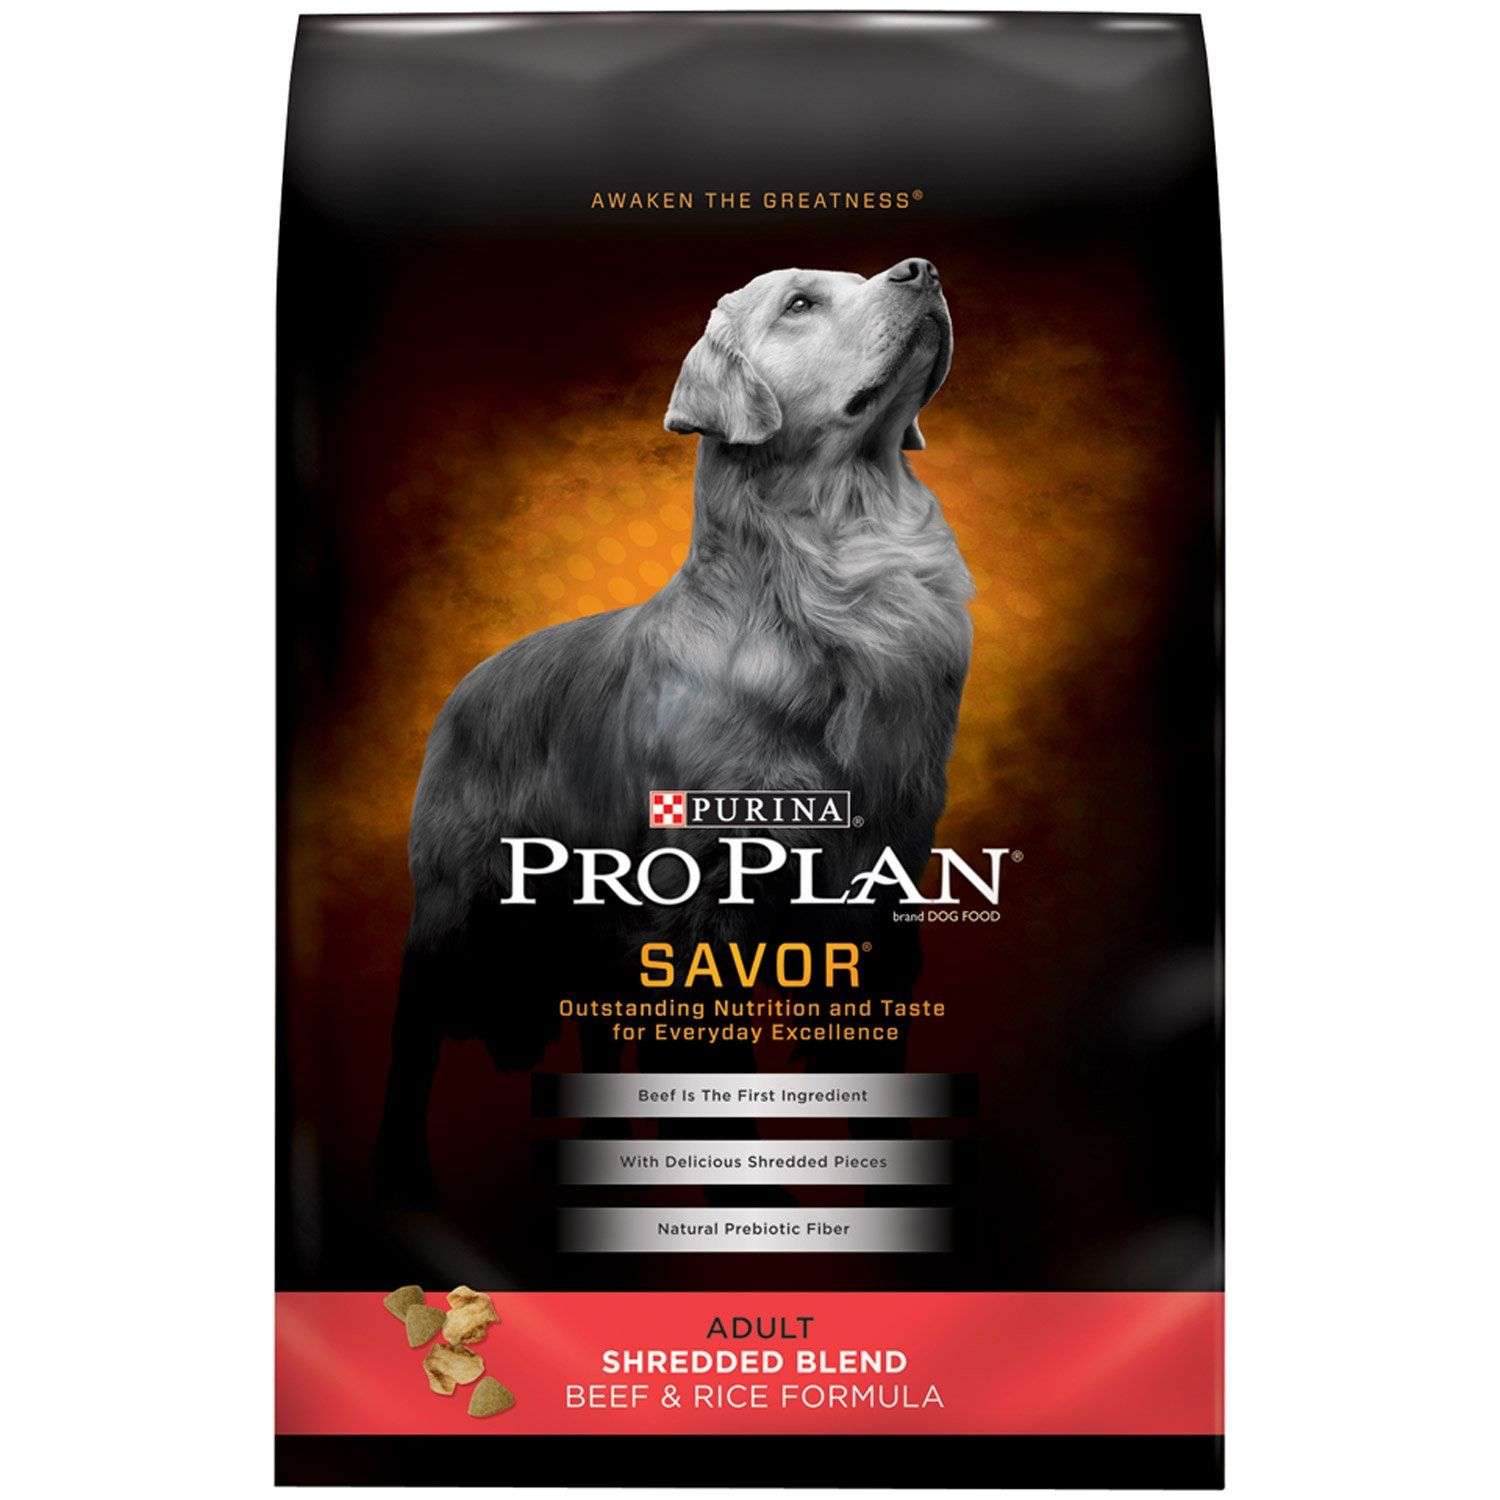 Purina Pro Plan Savor Shredded Blend Beef Rice Adult Dog Food